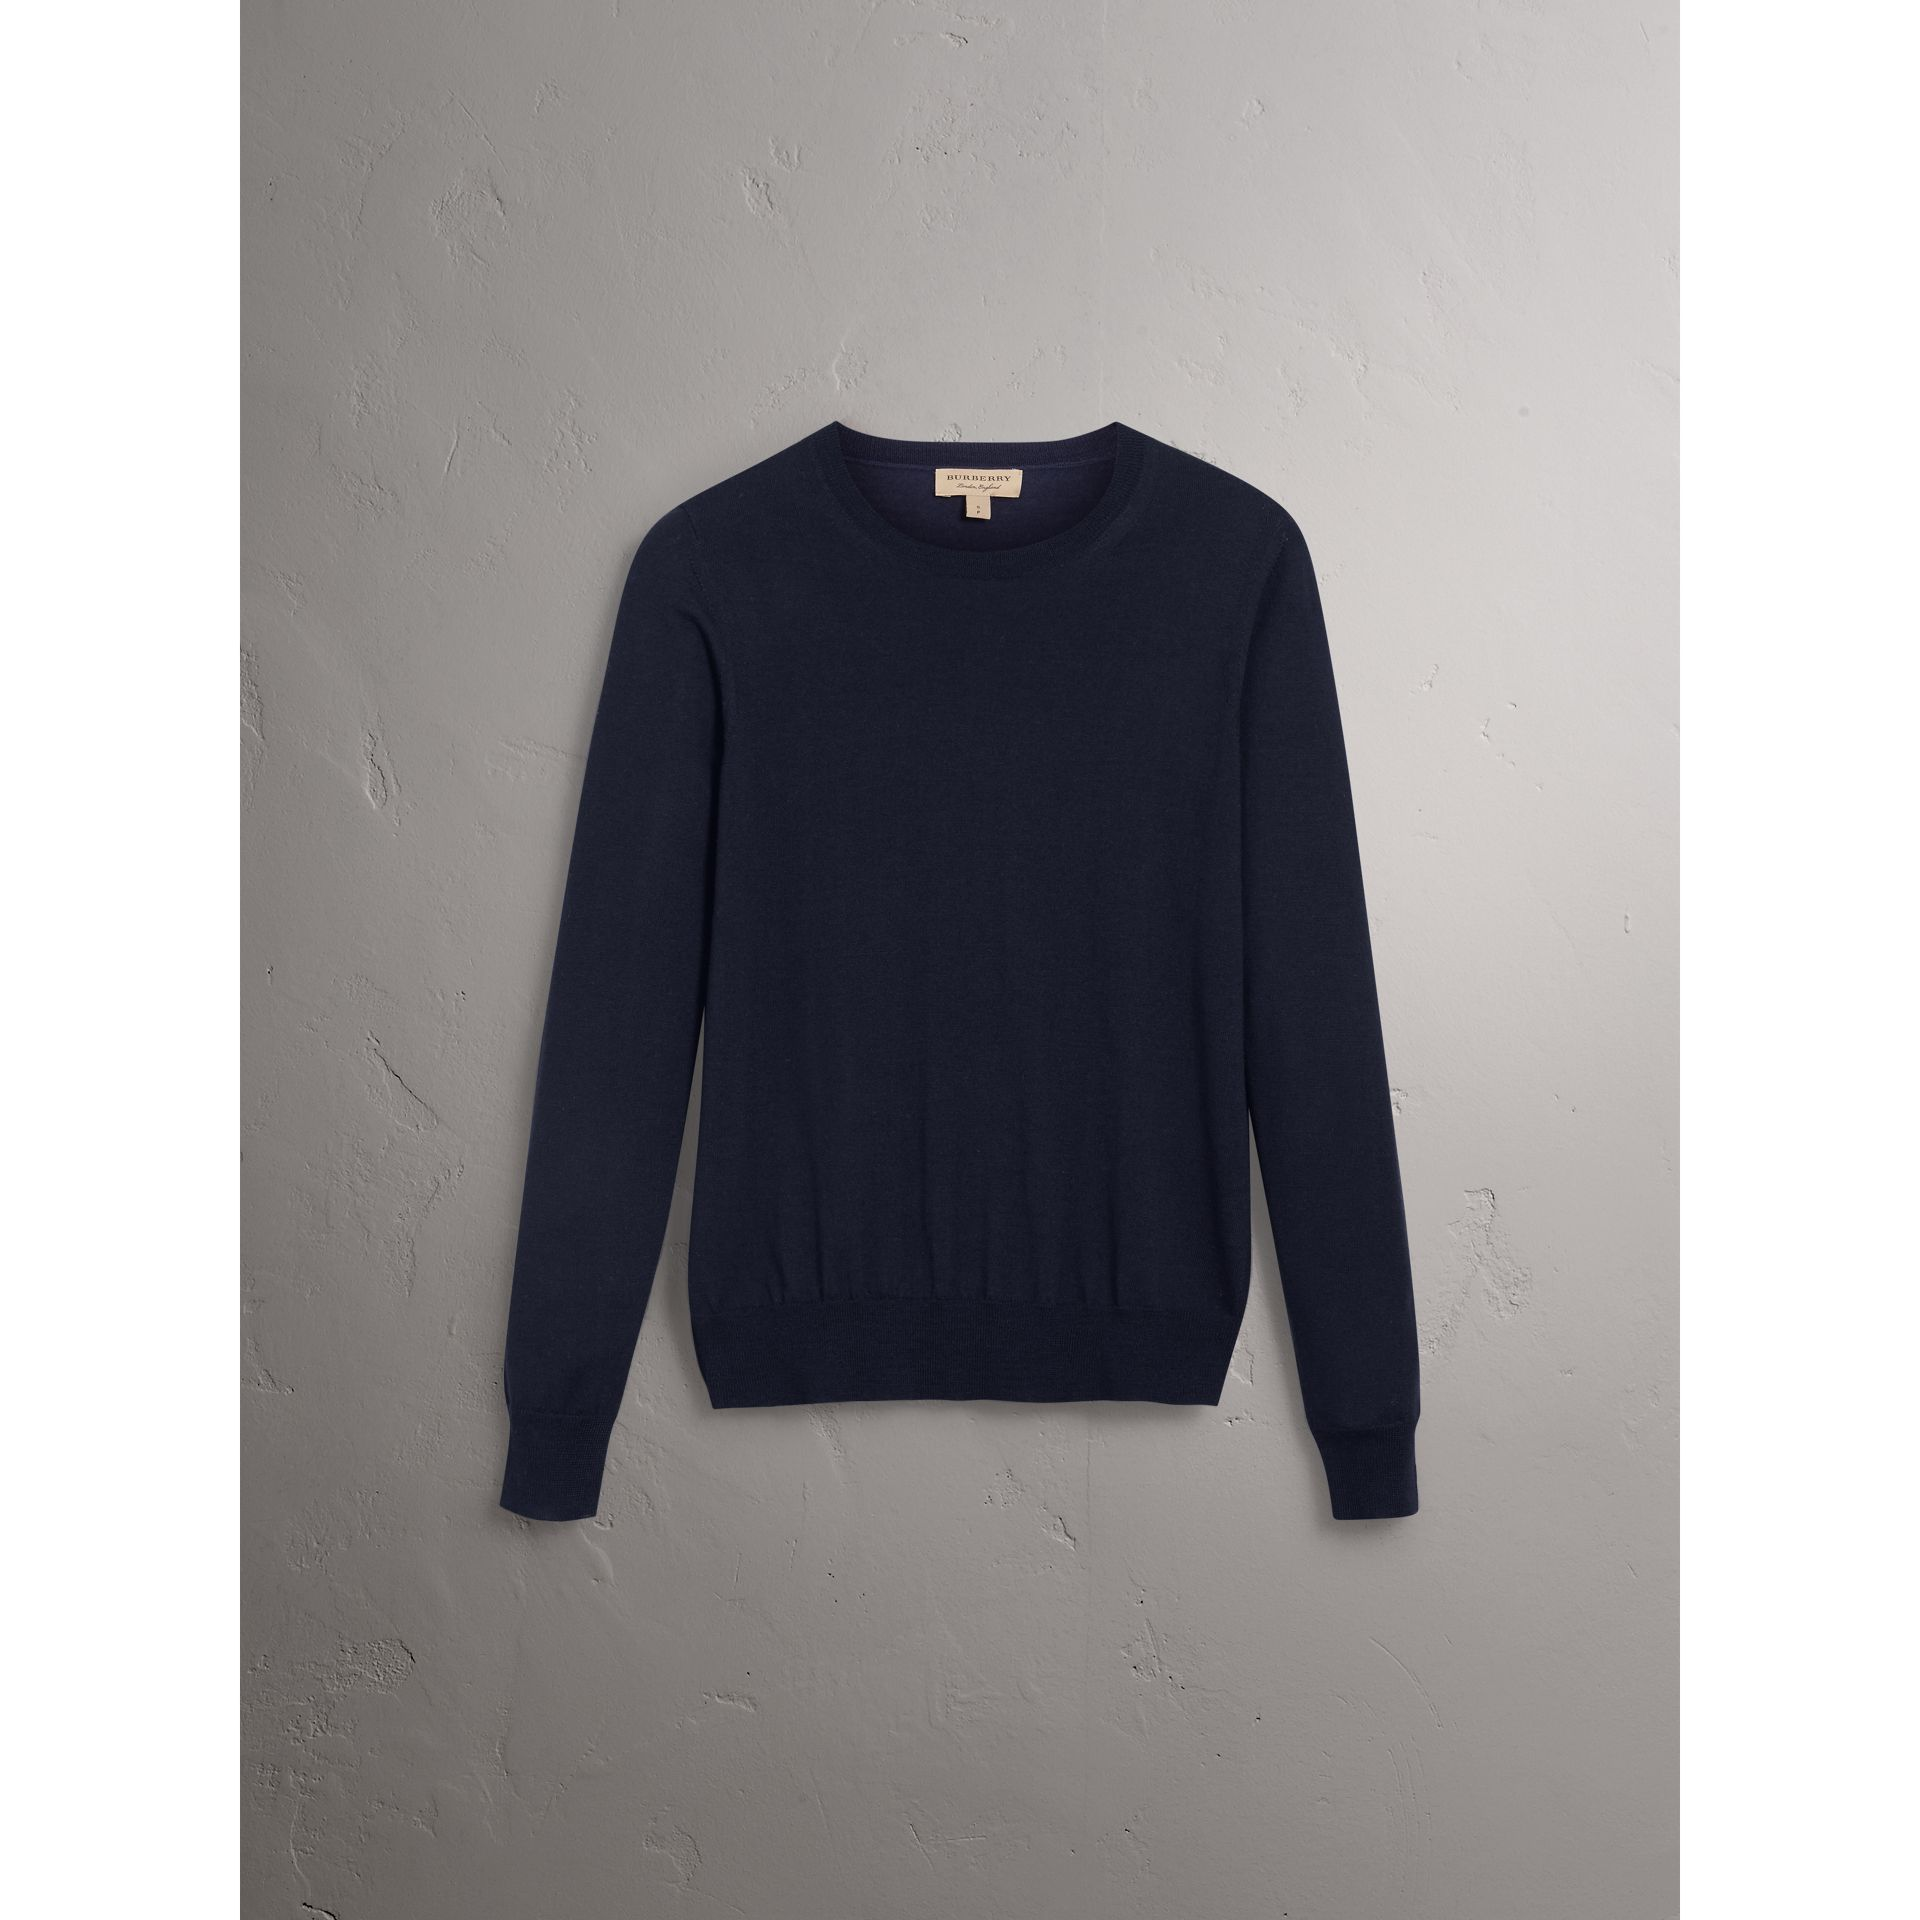 Check Detail Merino Wool Sweater in Navy - Women | Burberry - gallery image 3